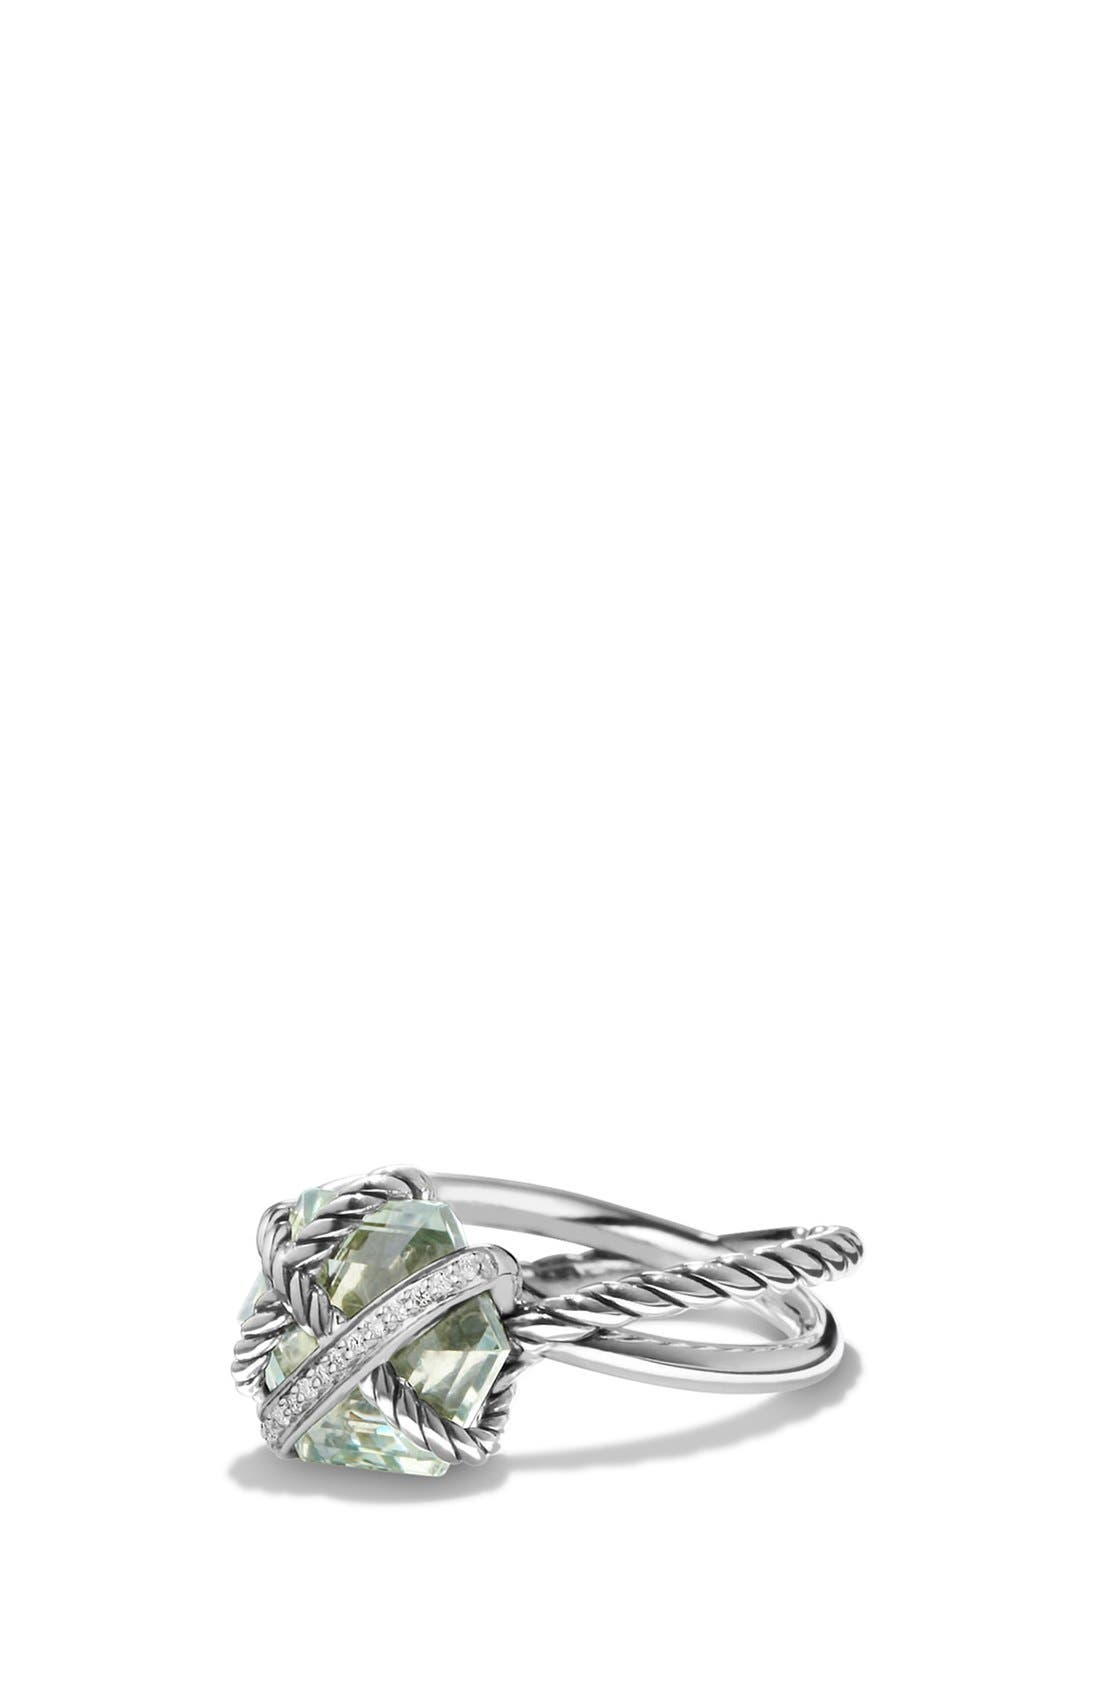 Main Image - David Yurman Cable Wrap Ring with Semiprecious Stone and Diamonds